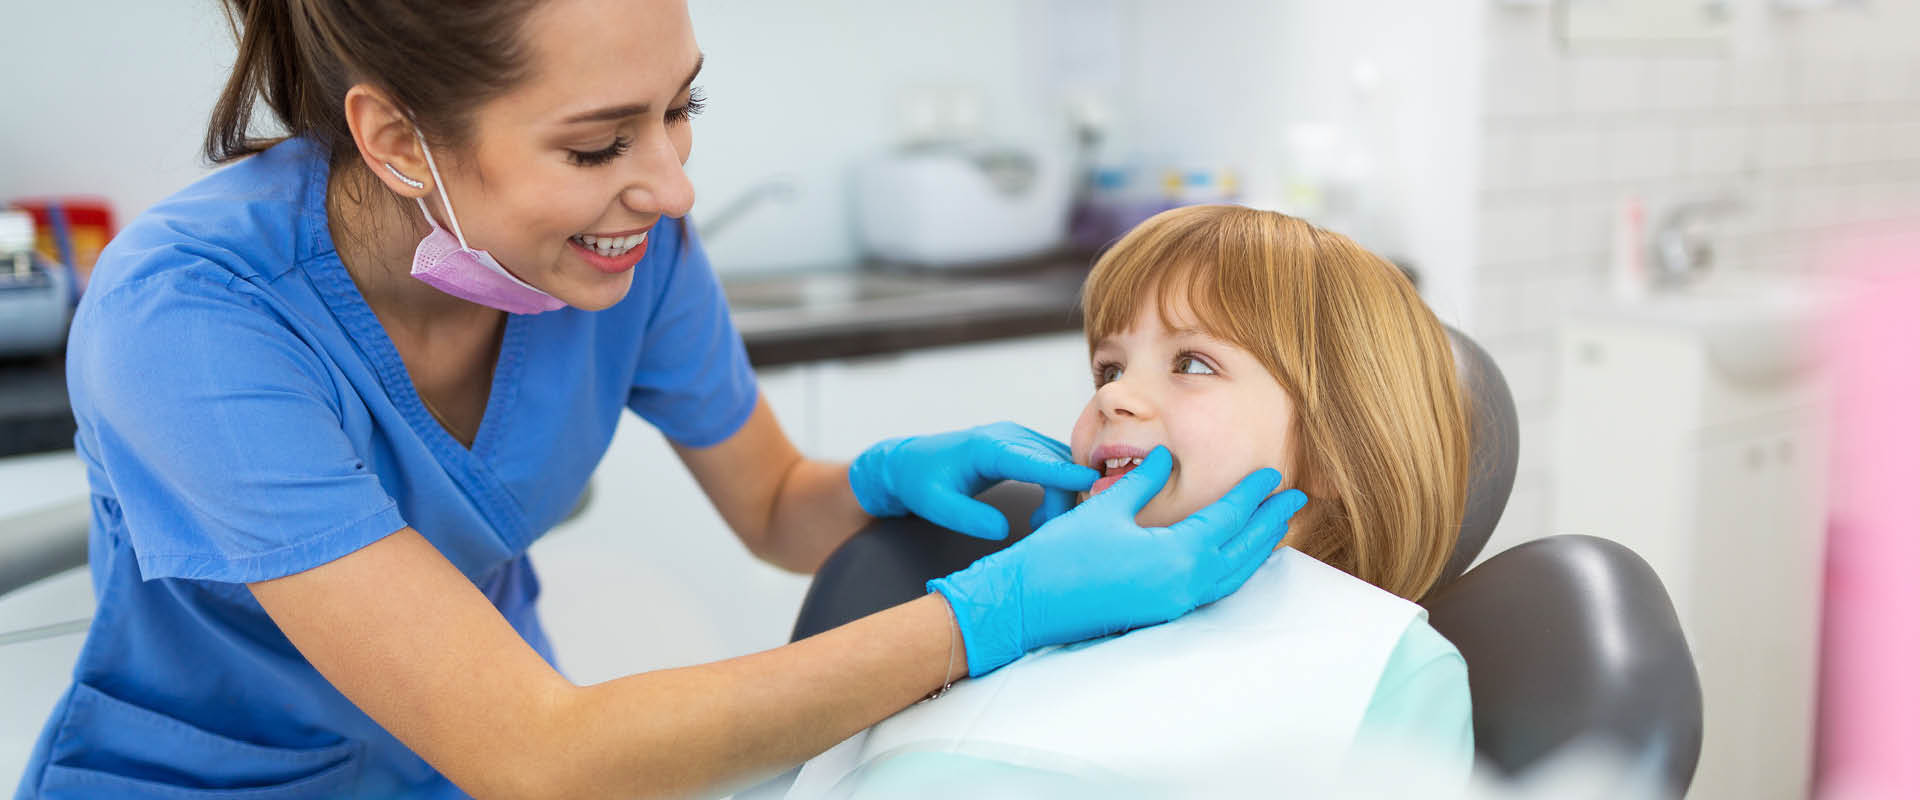 Oral Health Tips and Techniques for Kids Oct 23